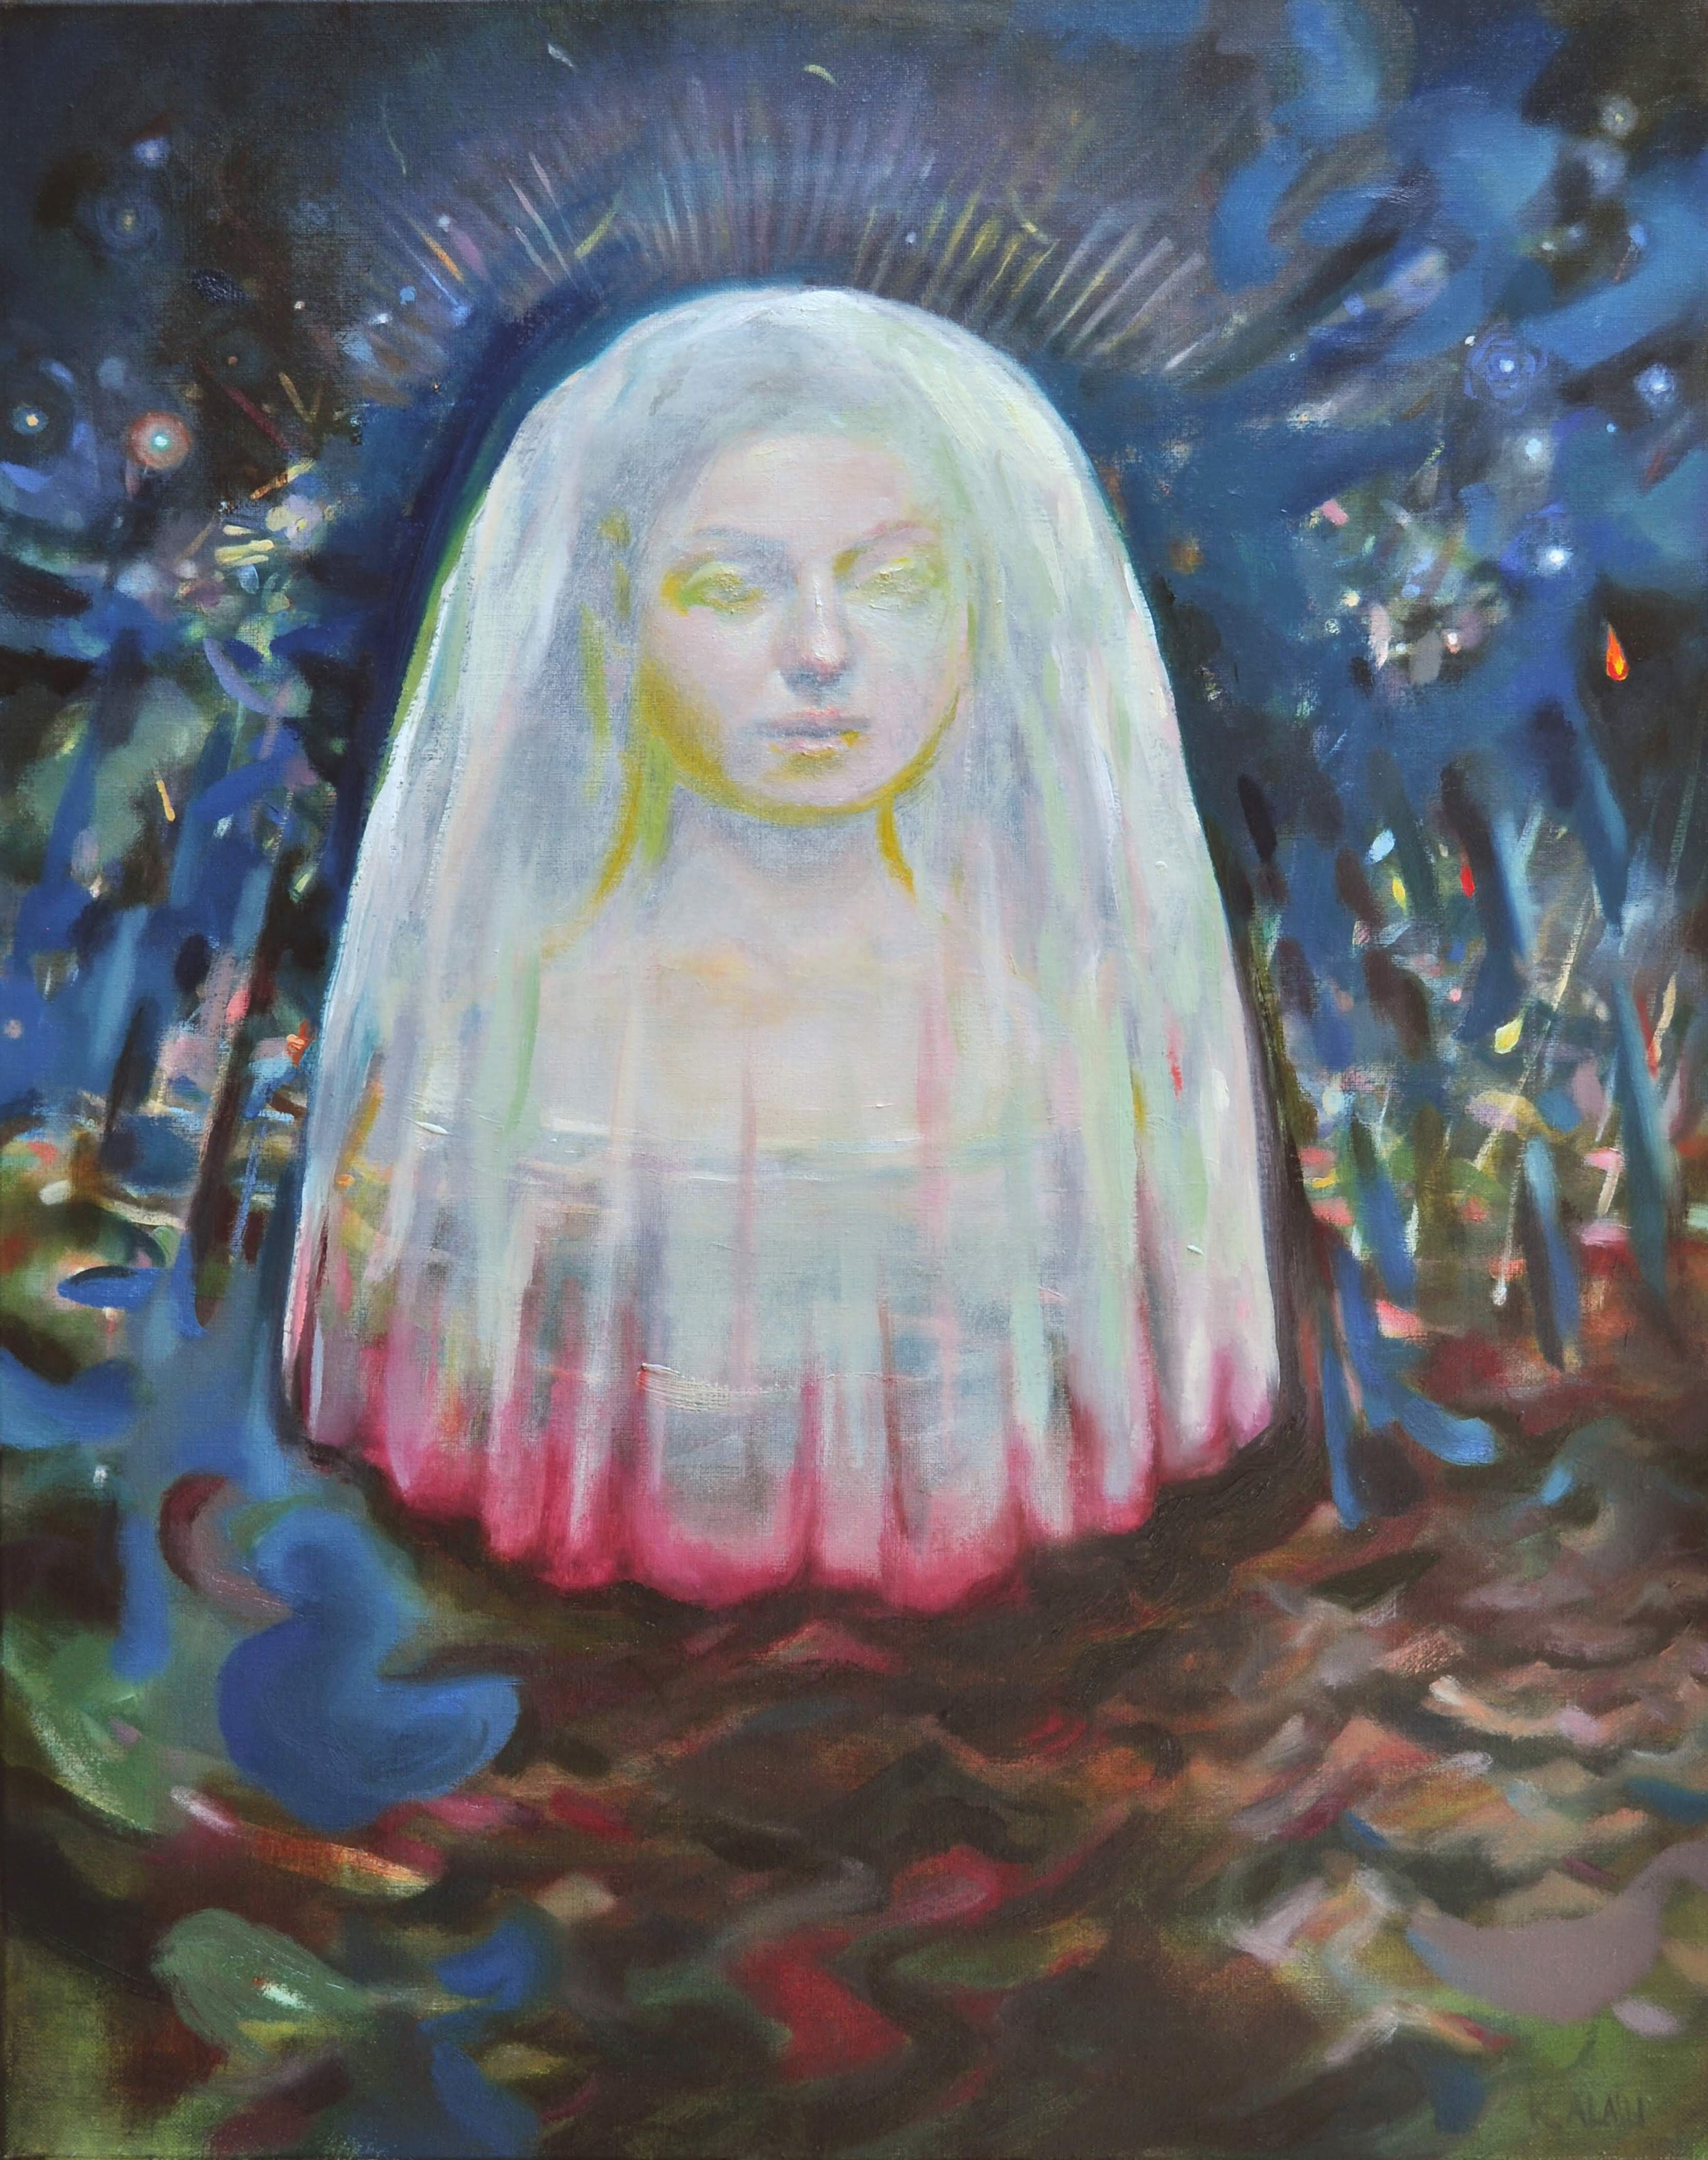 Katelyn Alain   Awakening in the Depths   2019  Oil on canvas  Signed and titled by the artist,  verso   30 x 24 inches